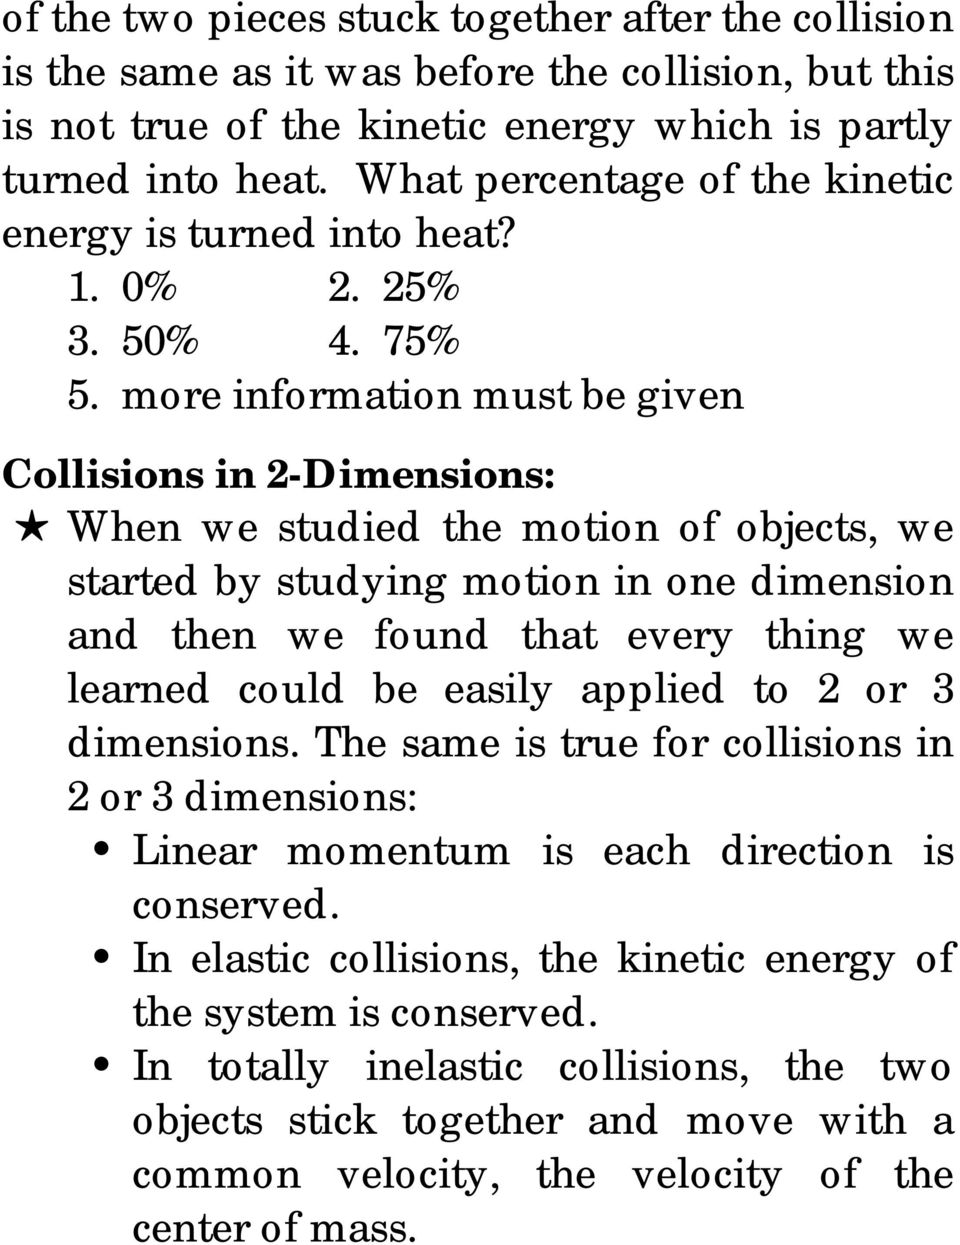 moe infomation must be gien Collisions in 2-Dimensions: When we studied the motion of objects, we stated by studying motion in one dimension and then we found that eey thing we leaned could be